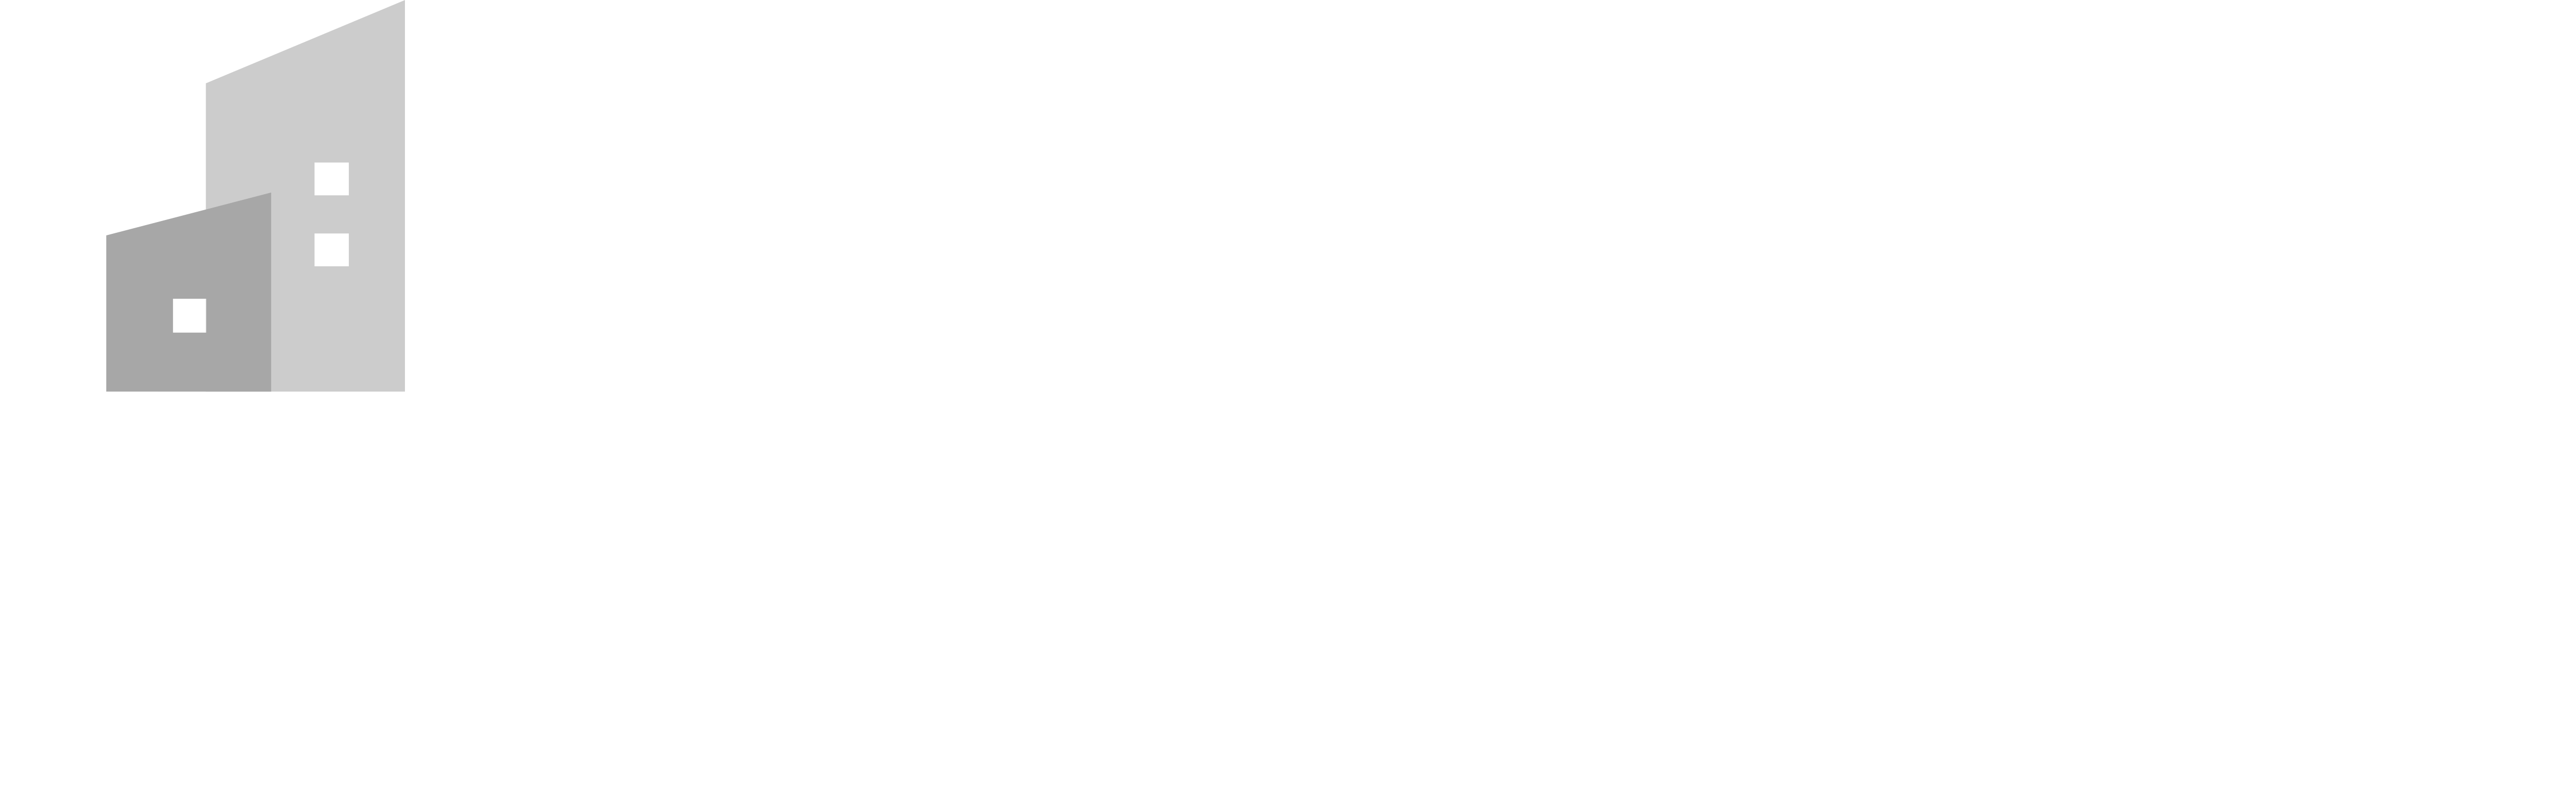 Accredited Painting Solutions Logo